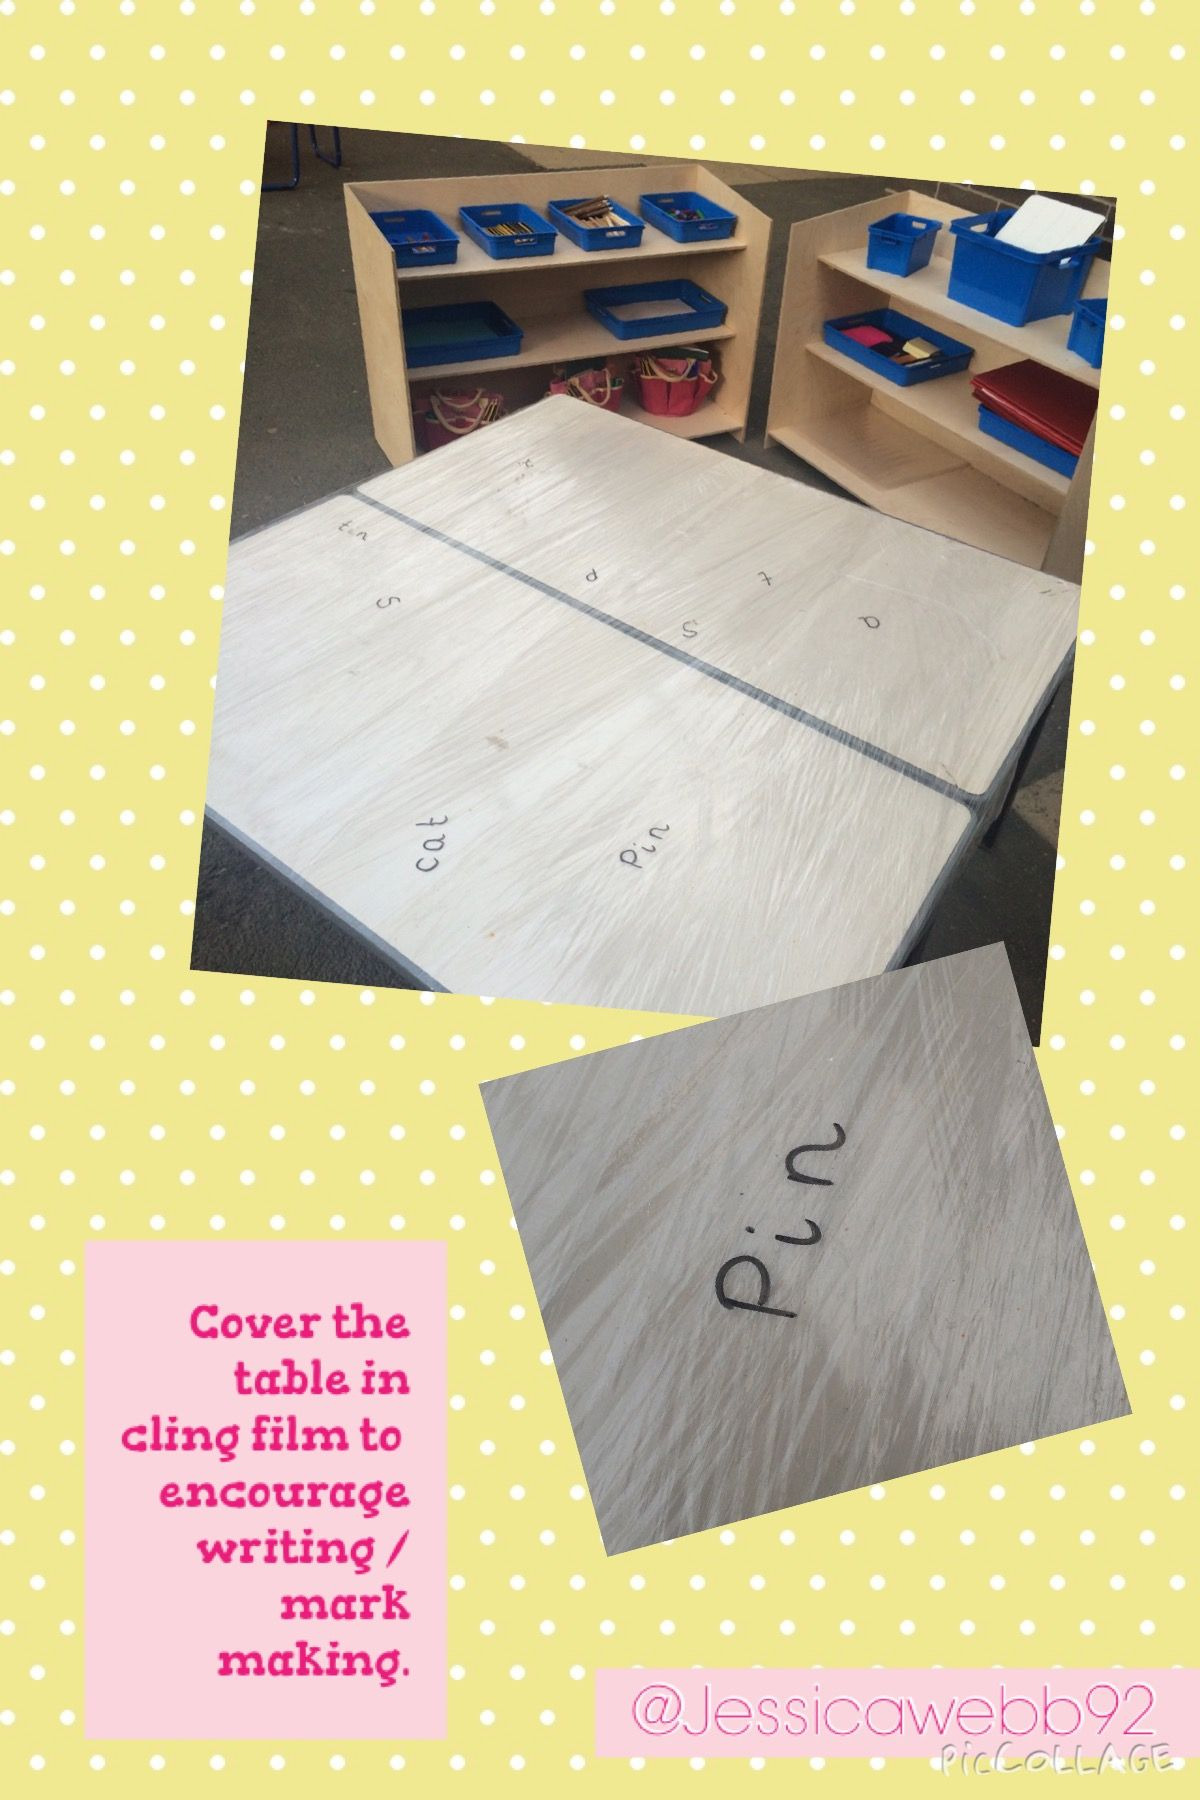 Cover A Table In Cling Film To Encourage Mark Making